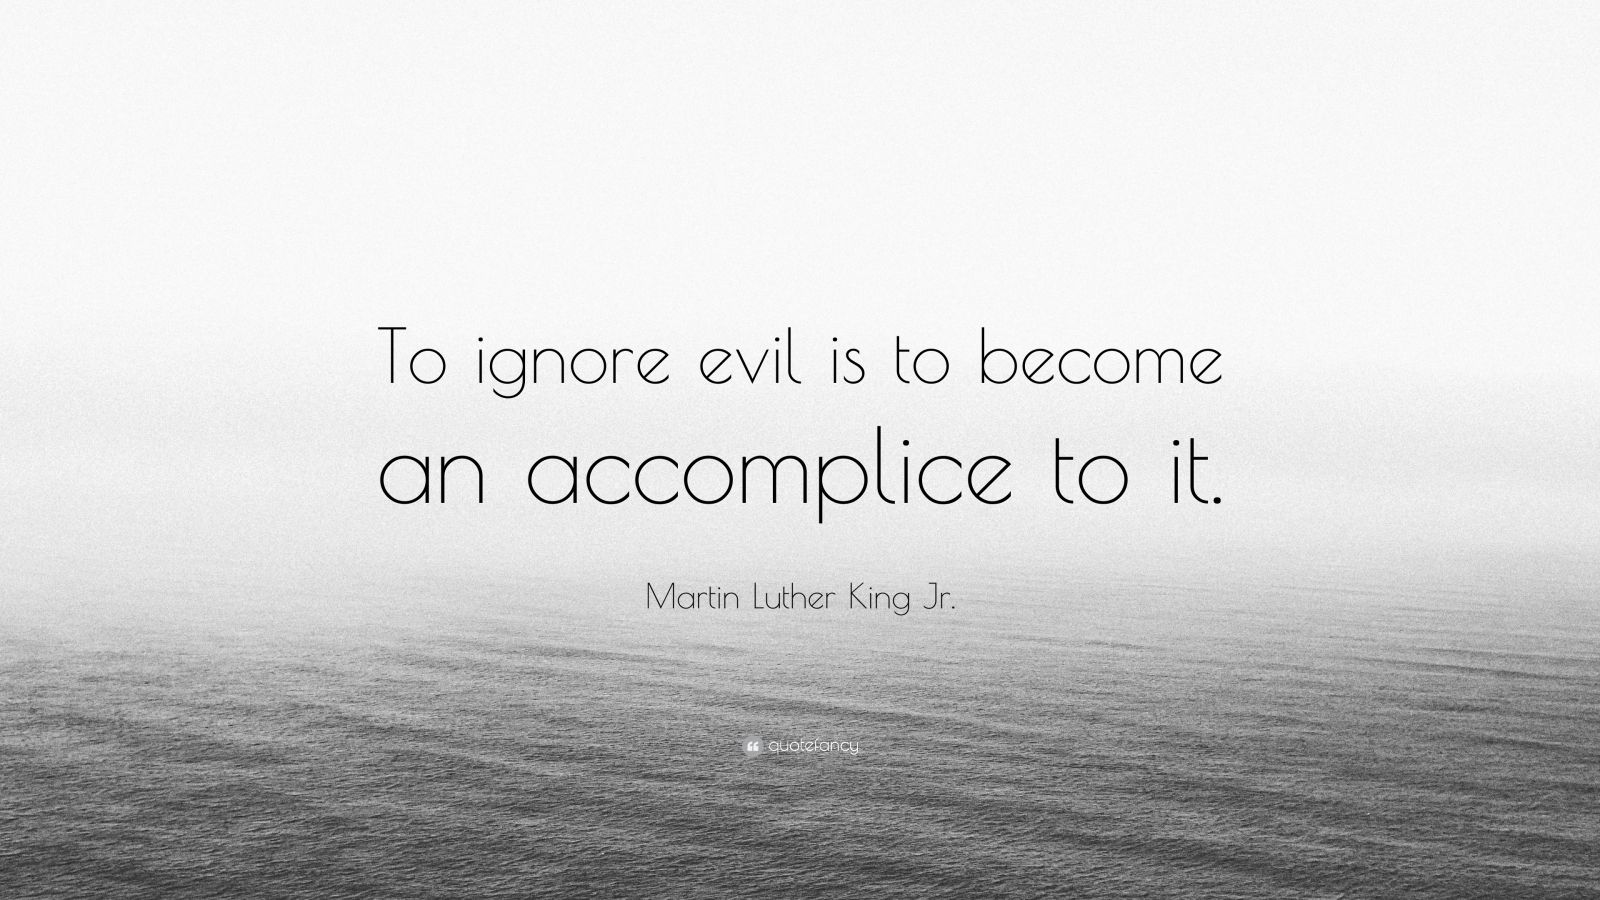 Gandhi Wallpapers With Quotes Martin Luther King Jr Quote To Ignore Evil Is To Become